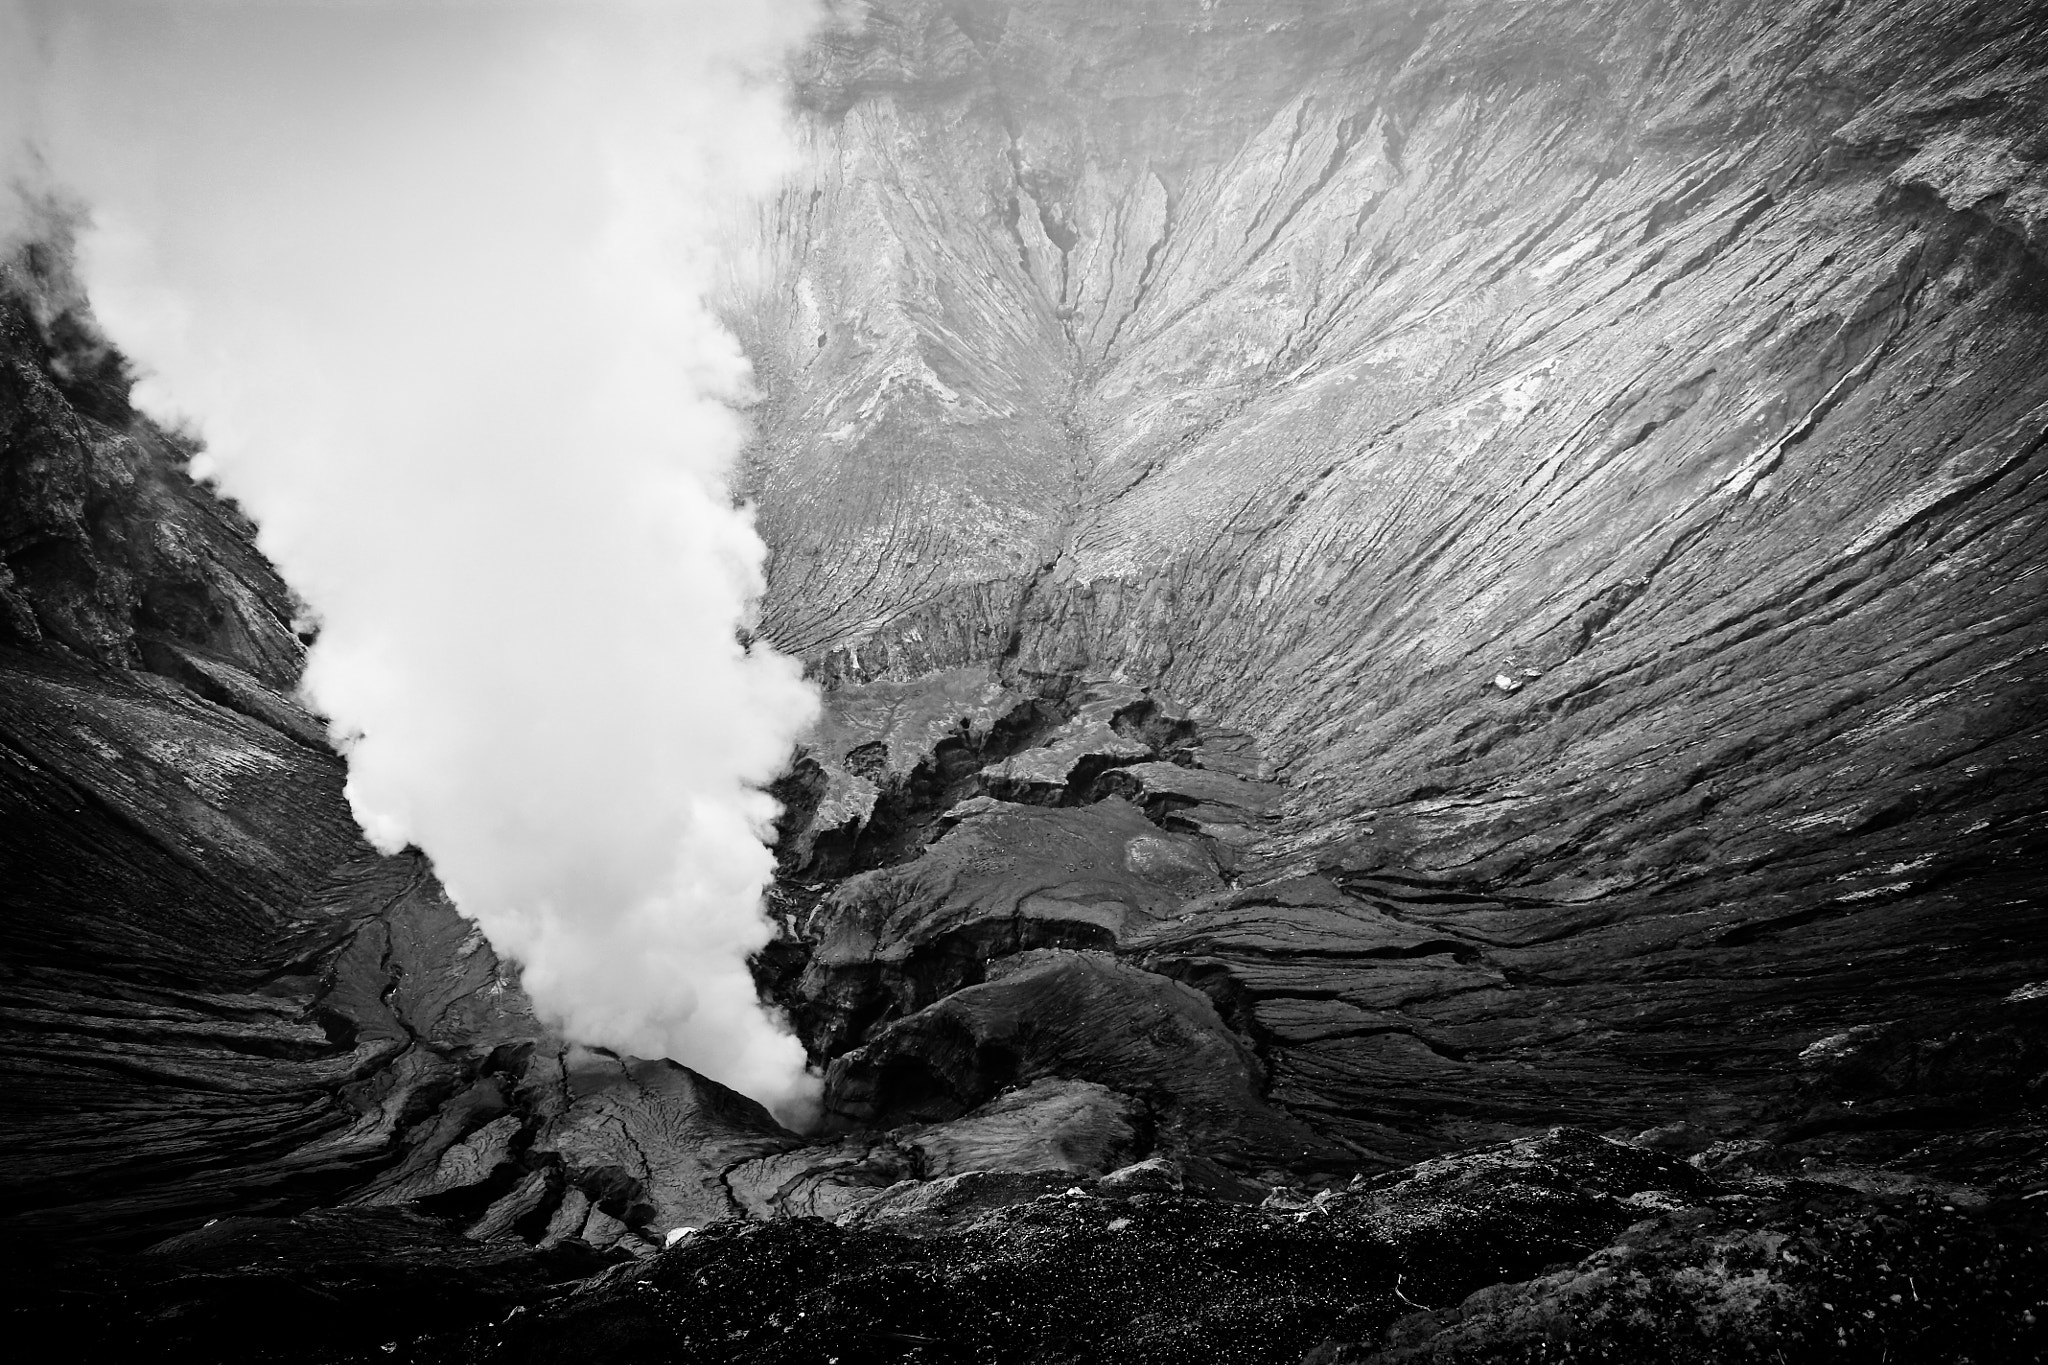 Photograph Inside Mount Bromo by Olivier Bergeron on 500px